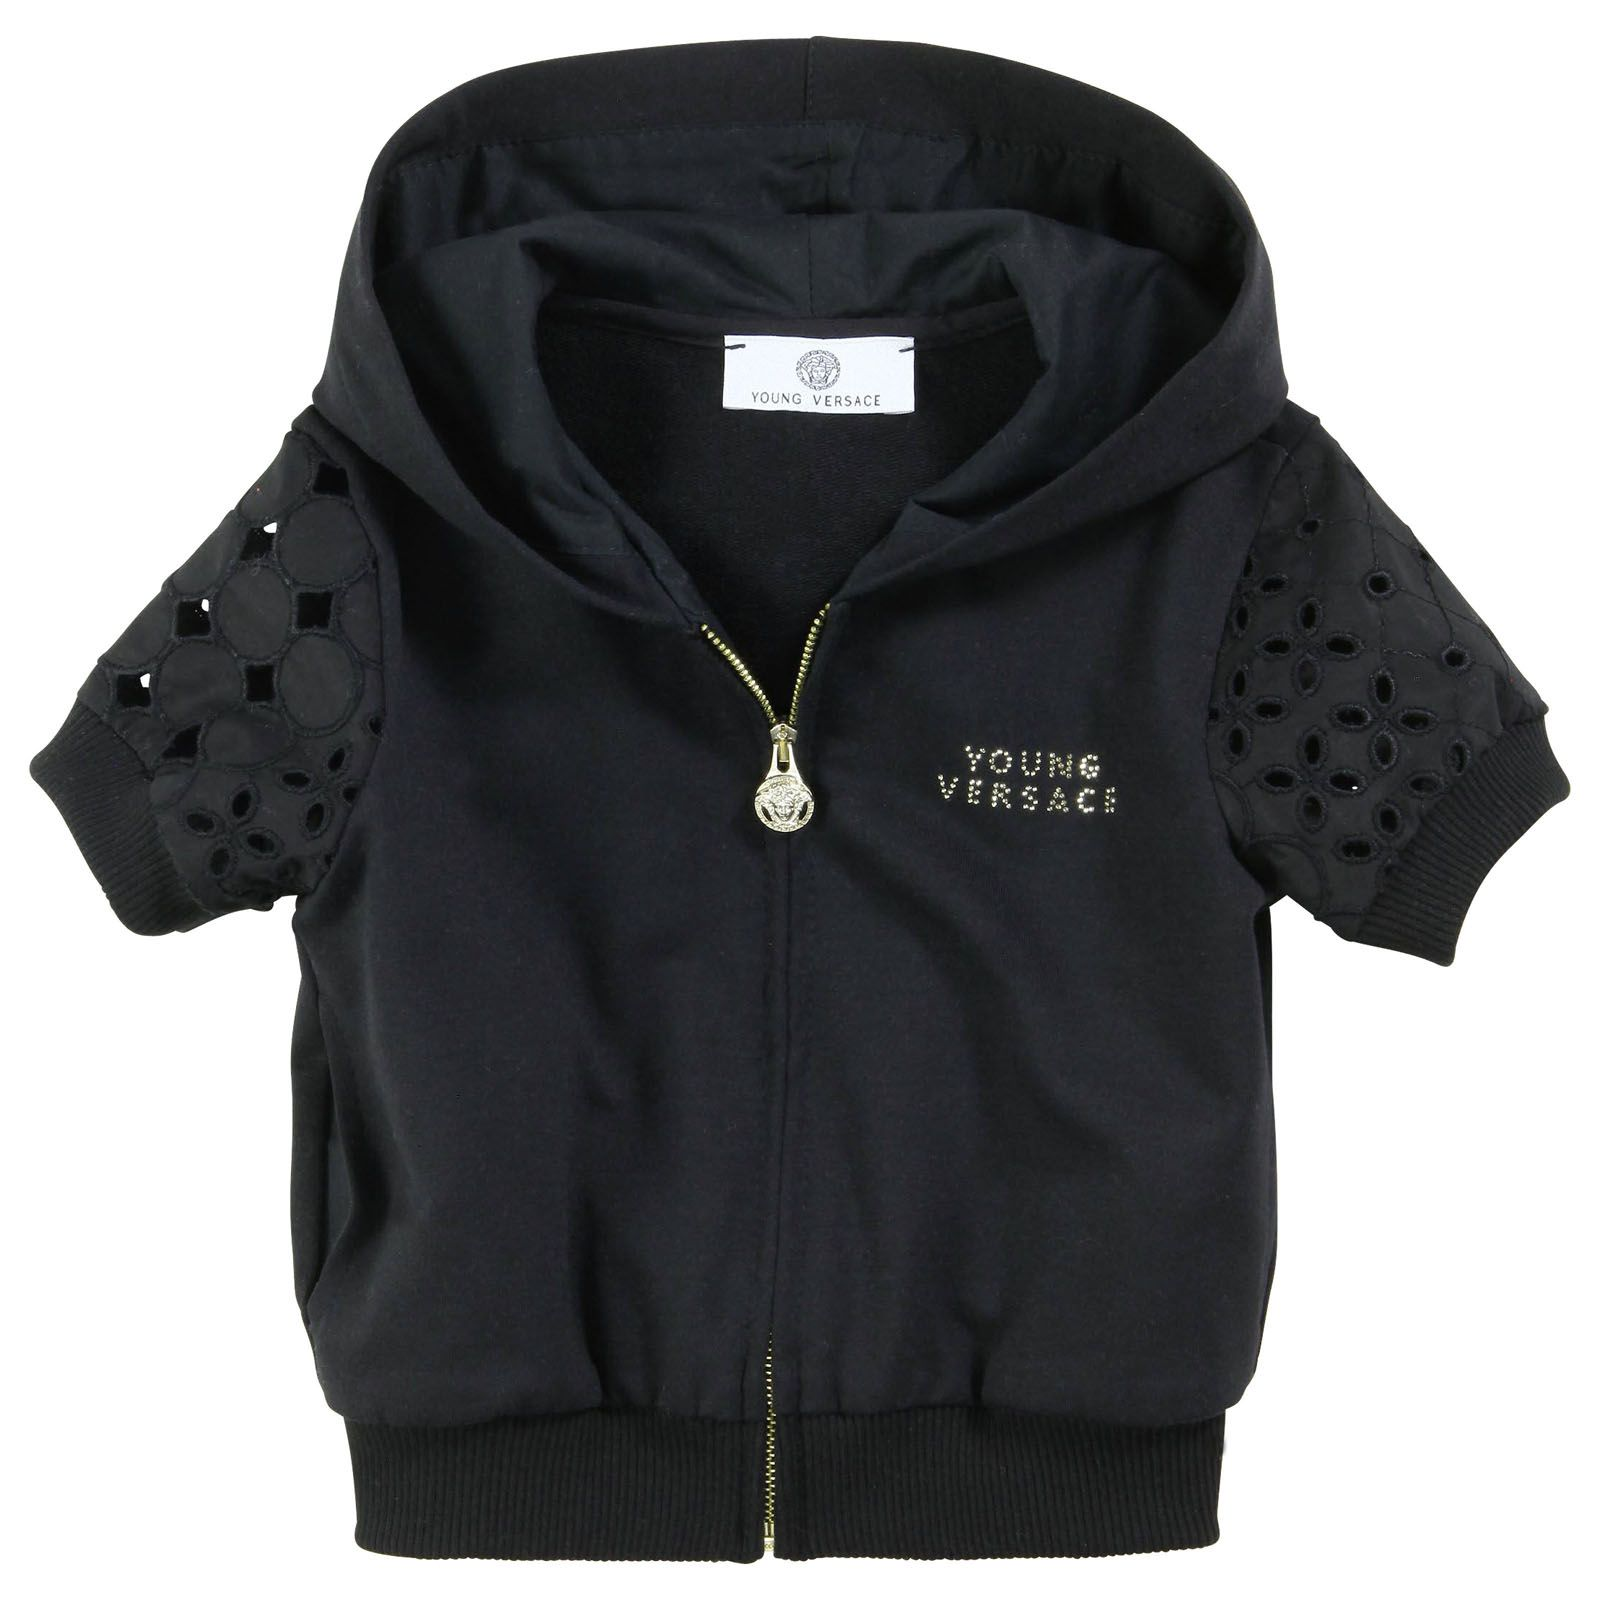 Baby Versace so cute kids swagg Pinterest